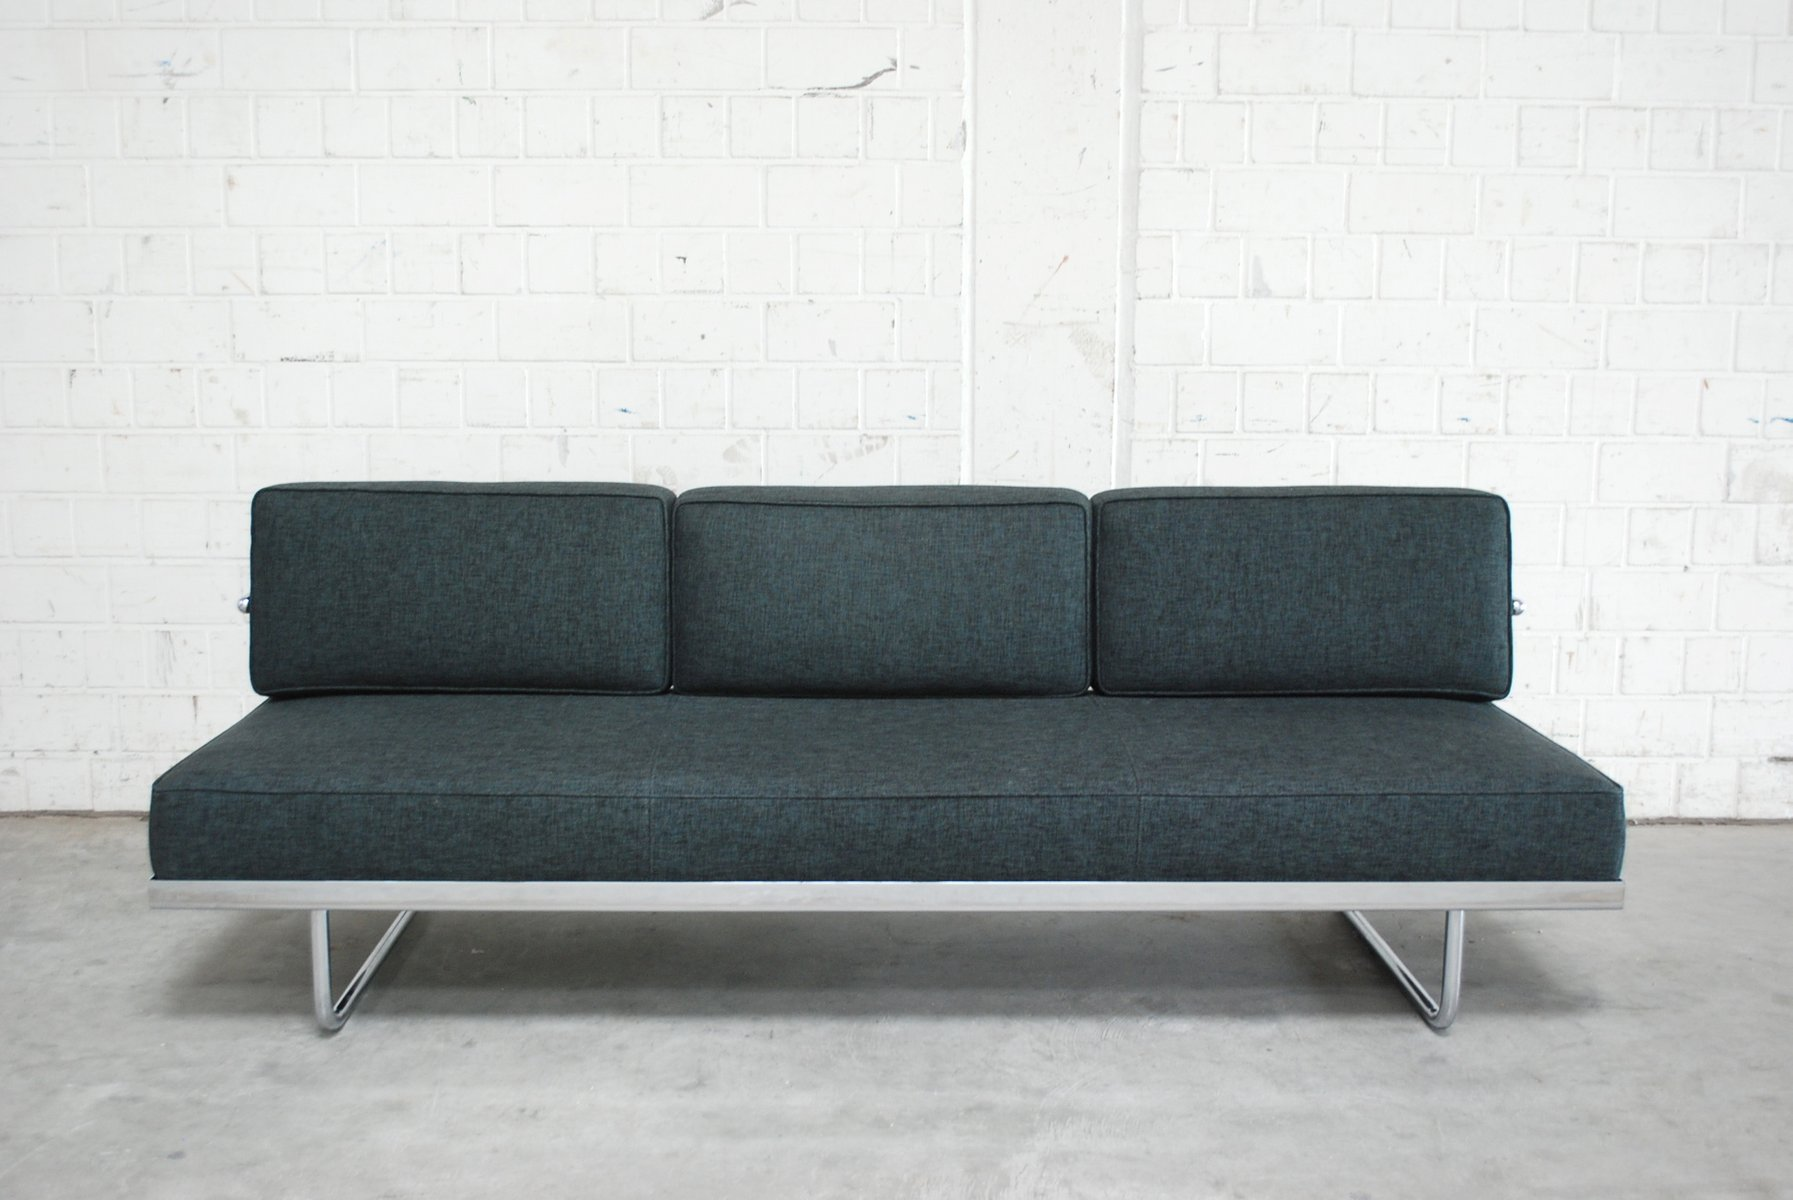 lc5 sofa price dfs brown leather uk vintage f daybed by le corbusier for cassina sale at pamono